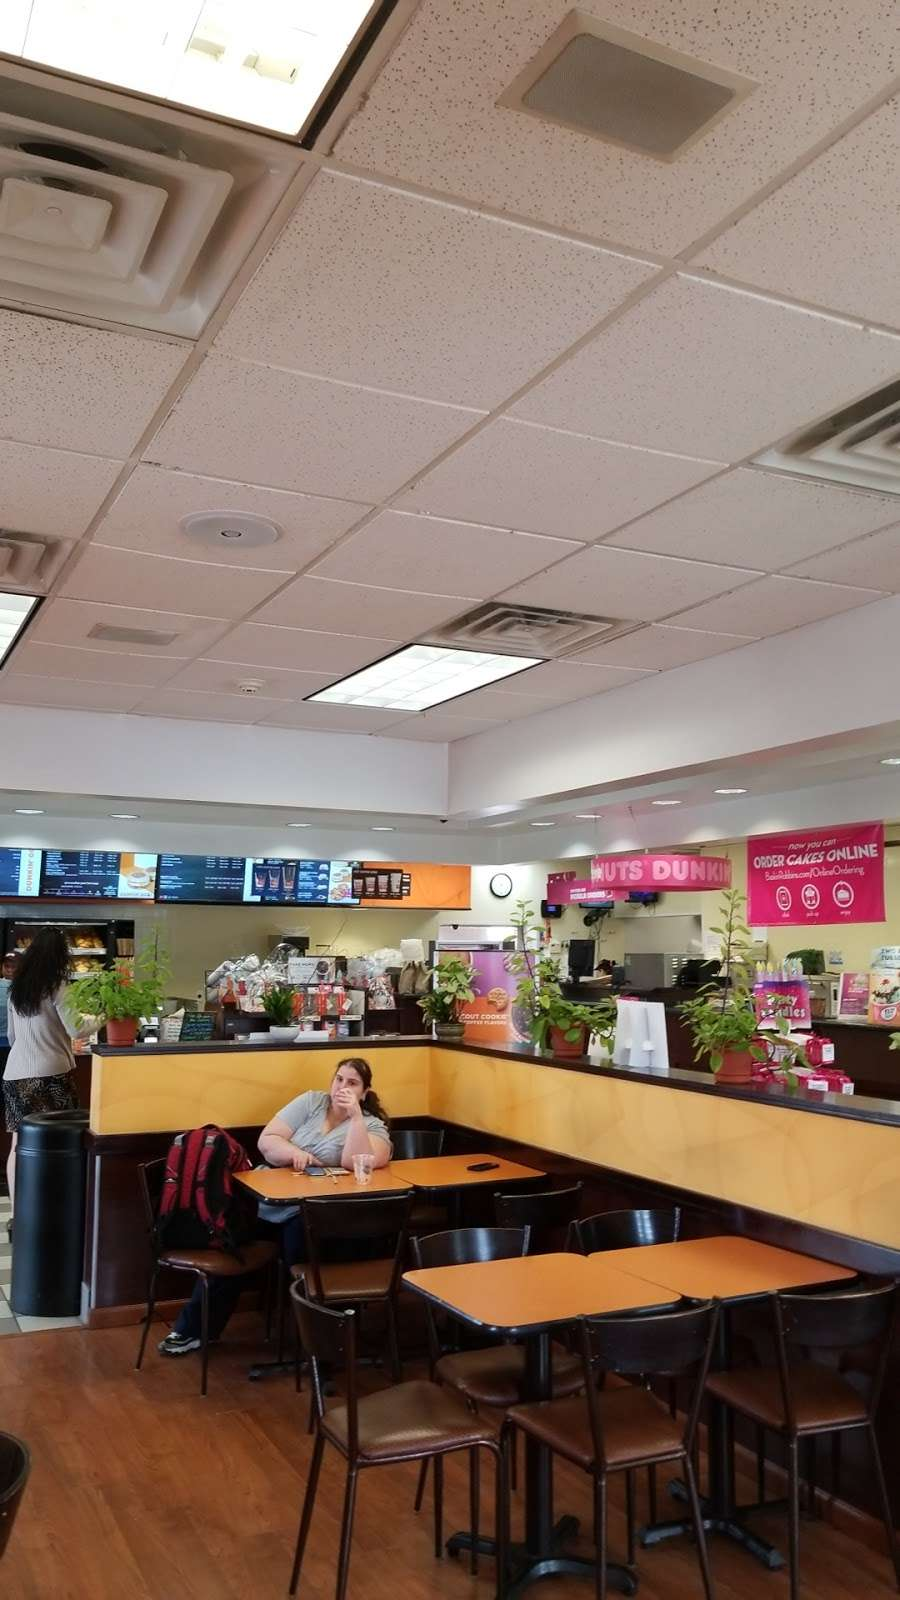 Dunkin Donuts - cafe  | Photo 7 of 10 | Address: 250 Bergen Turnpike, Little Ferry, NJ 07643, USA | Phone: (201) 373-0373